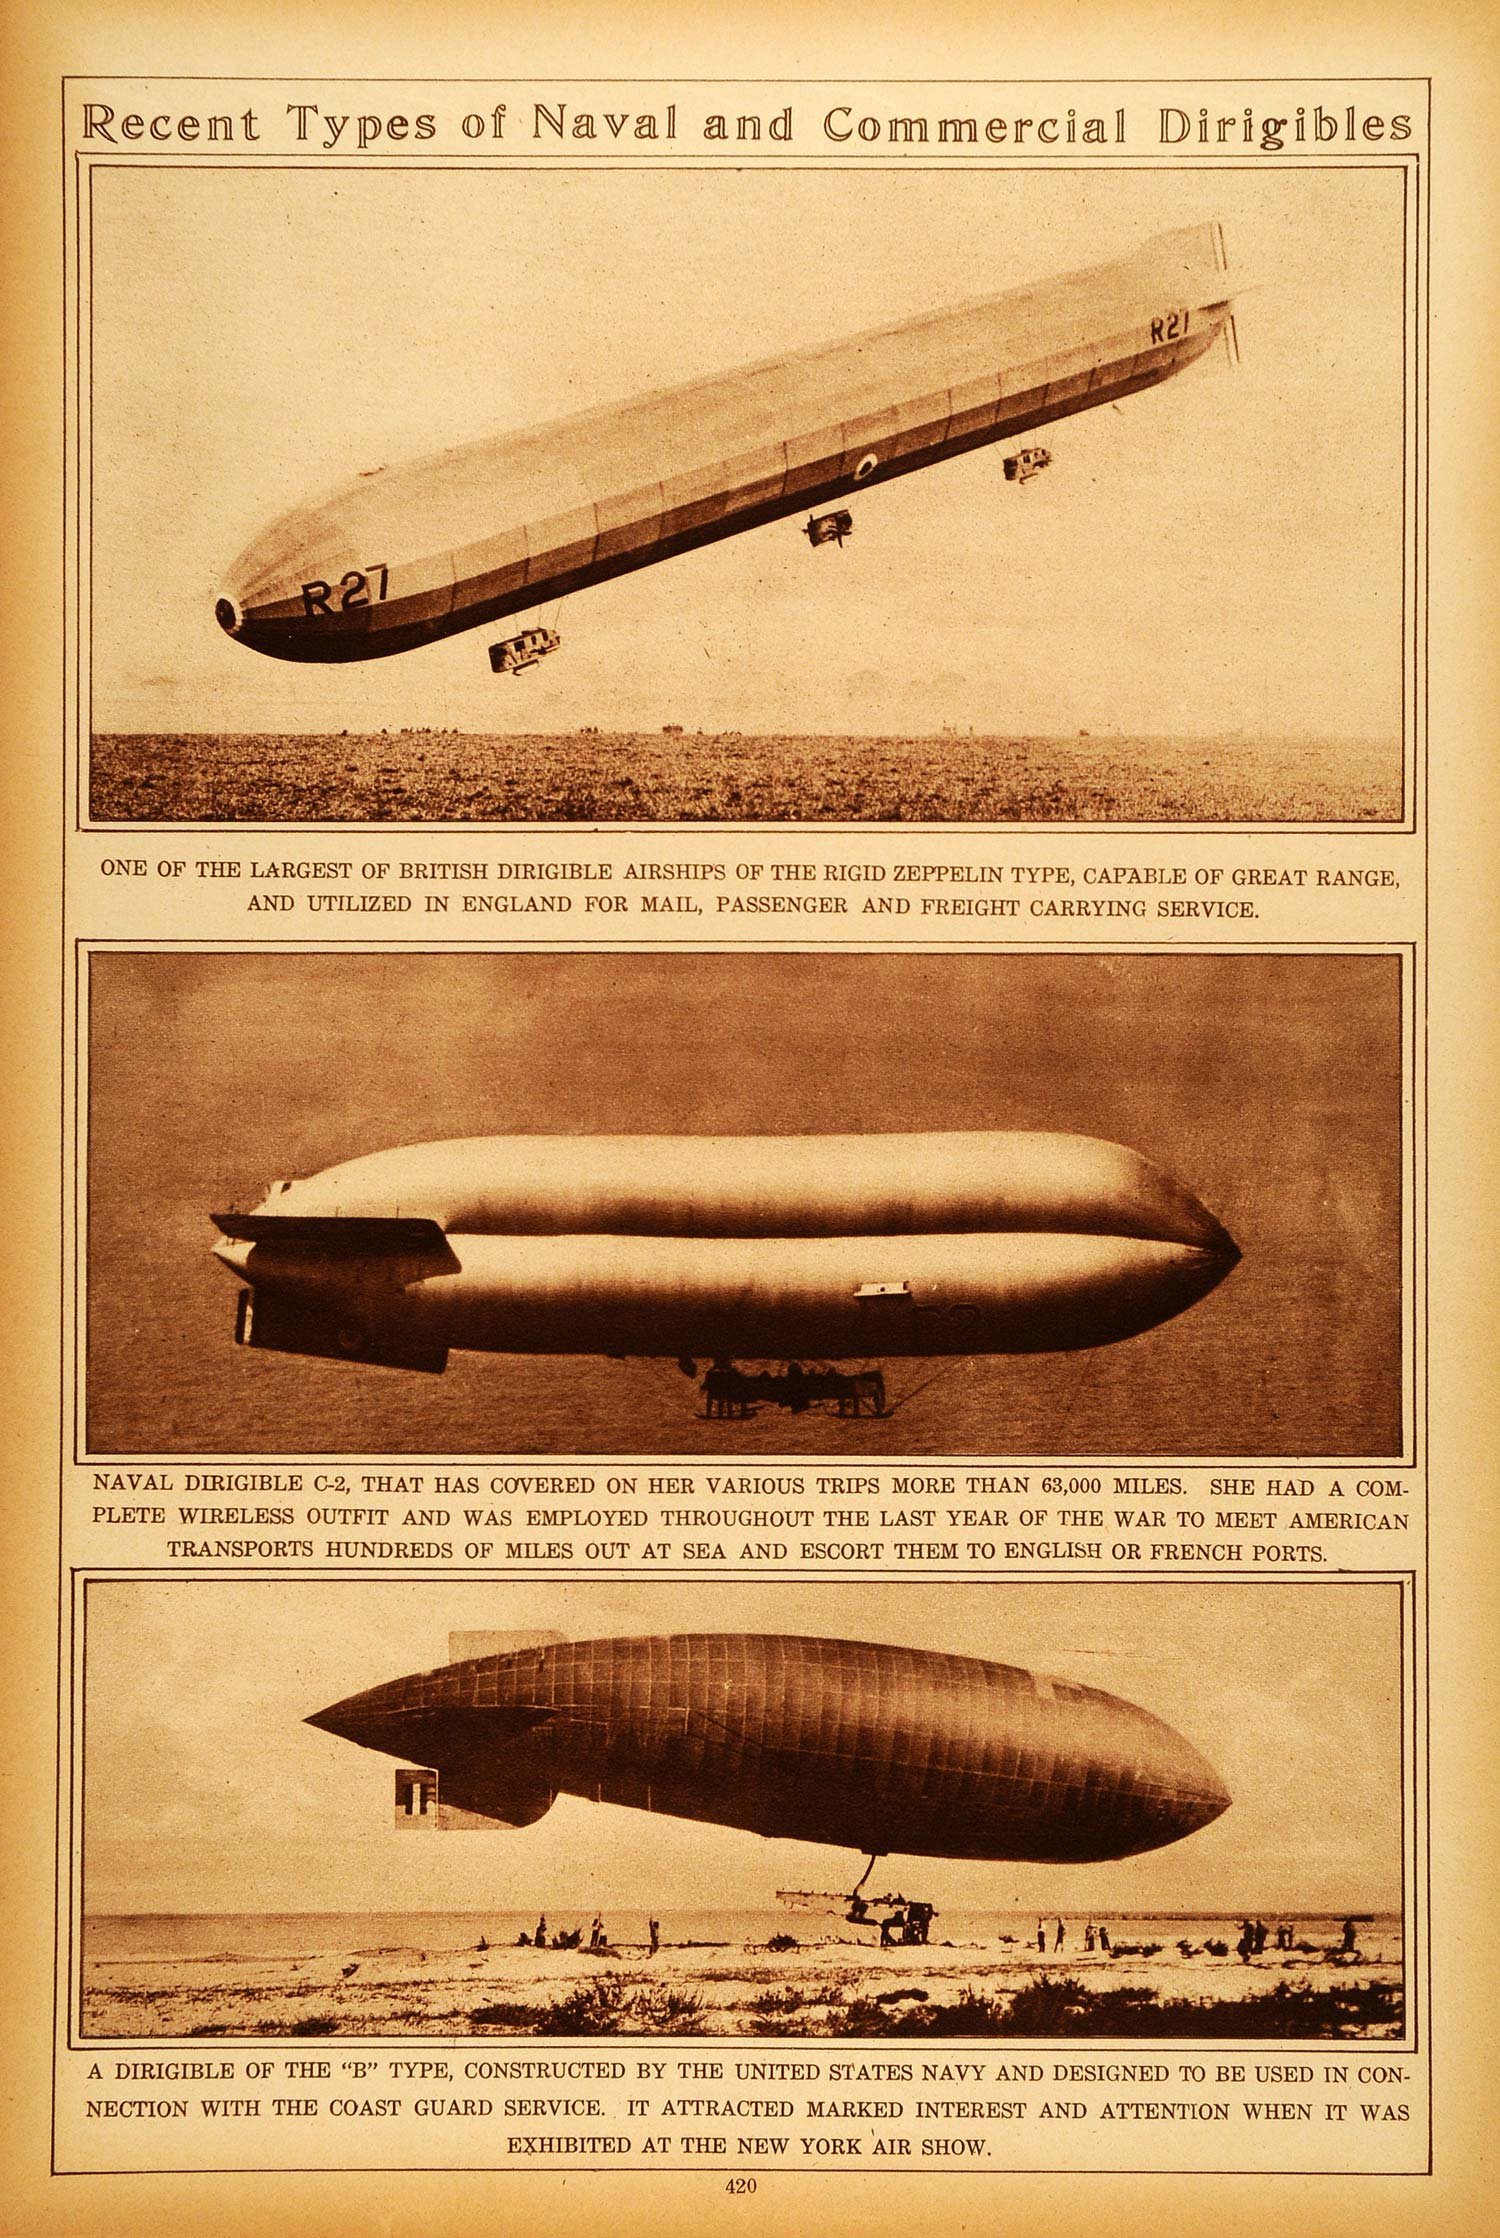 1922 Rotogravure British Dirigible Airship Zeppelin U.S. Navy Airship C-2 B-Type